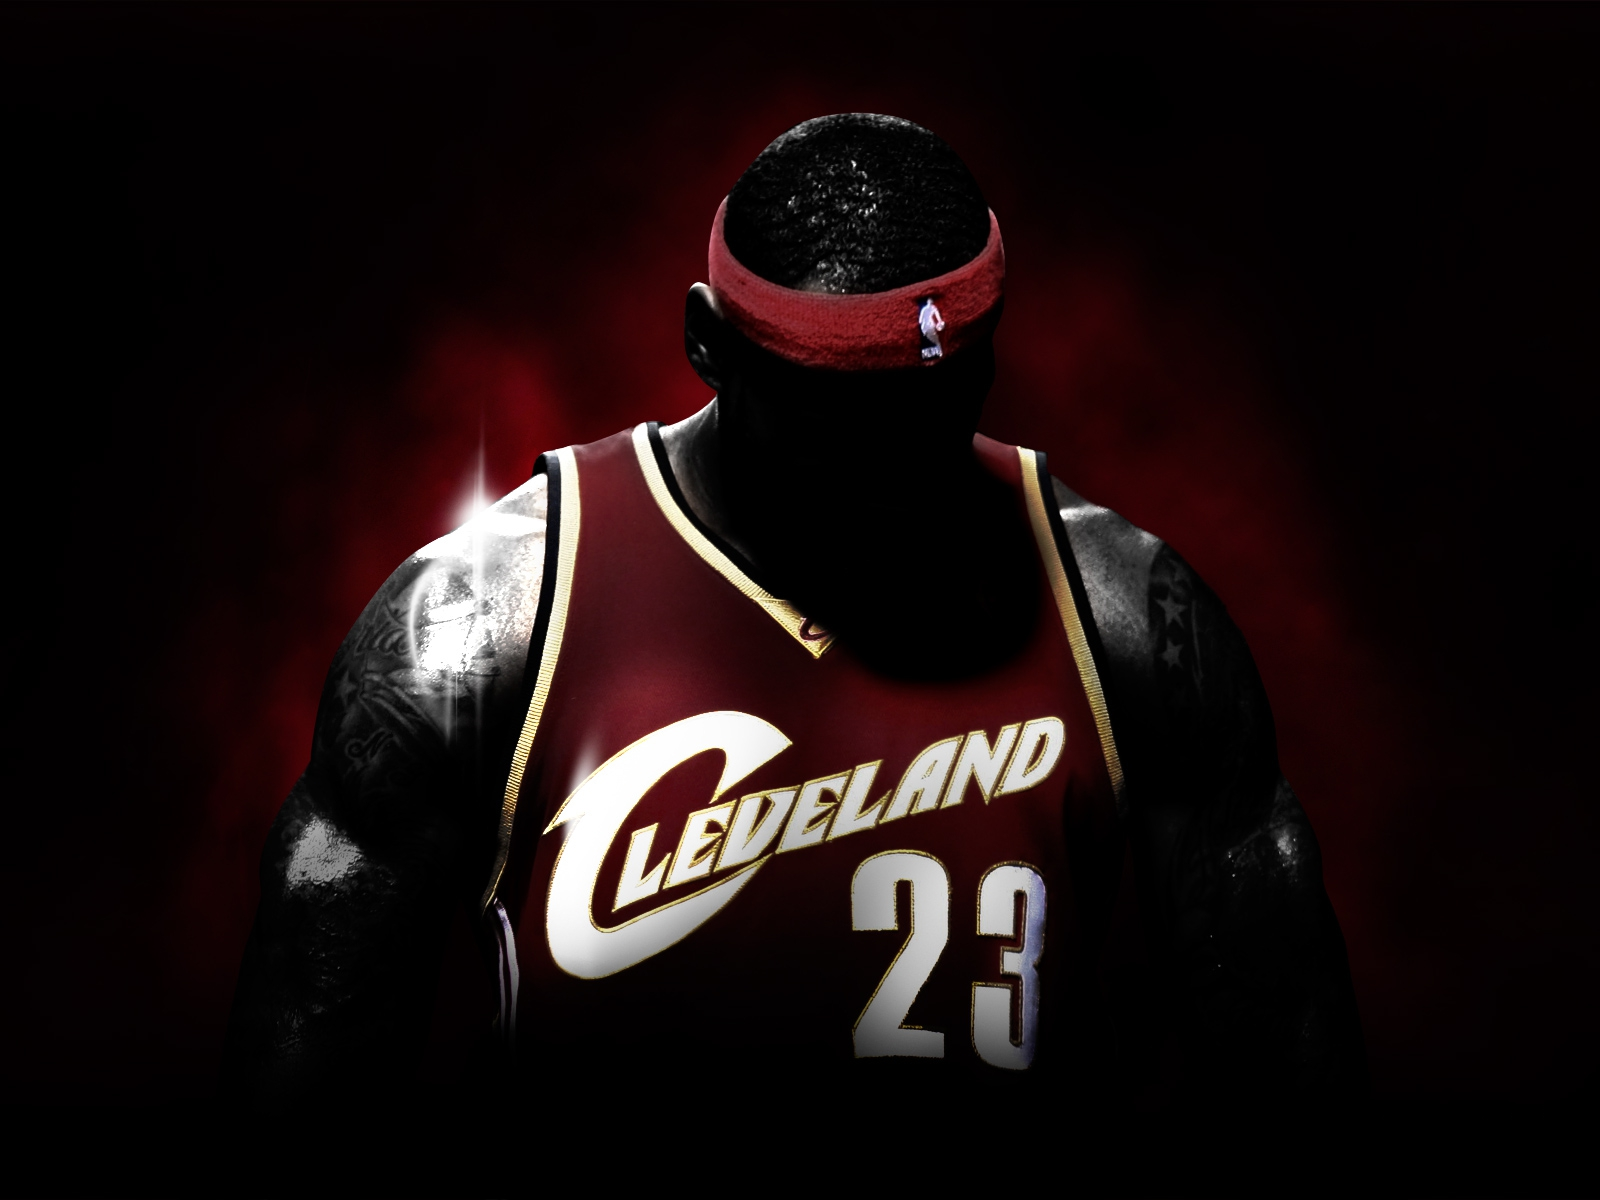 Free Download Funny Wallpaper Quotes Lebron James Cleveland Wallpapers Hd Free Download